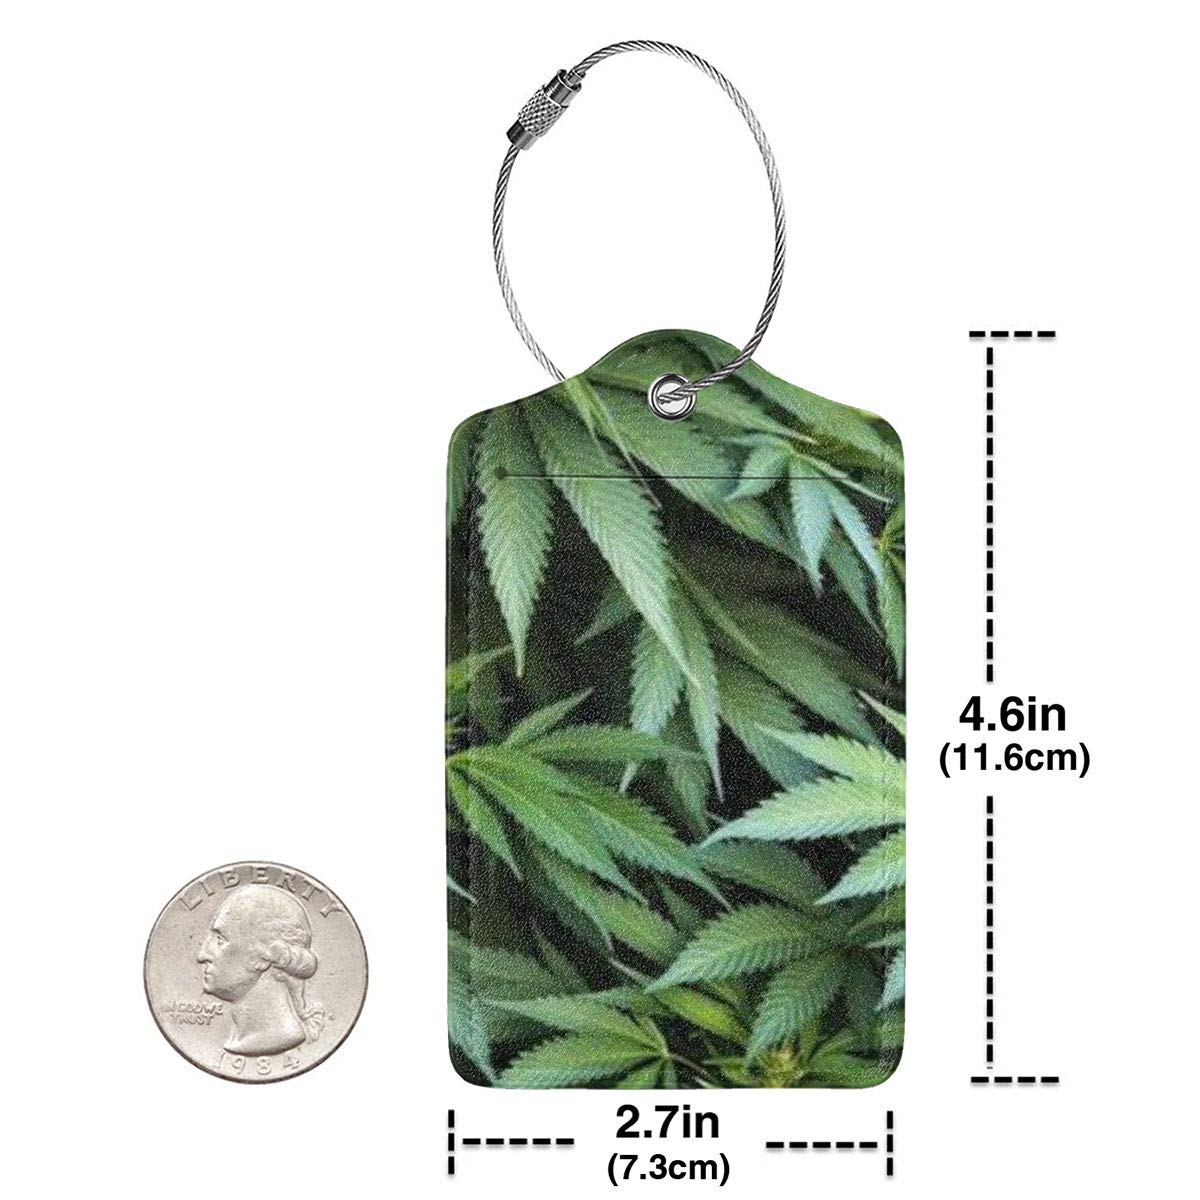 GoldK Cannabis Leaf Leather Luggage Tags Baggage Bag Instrument Tag Travel Labels Accessories with Privacy Cover